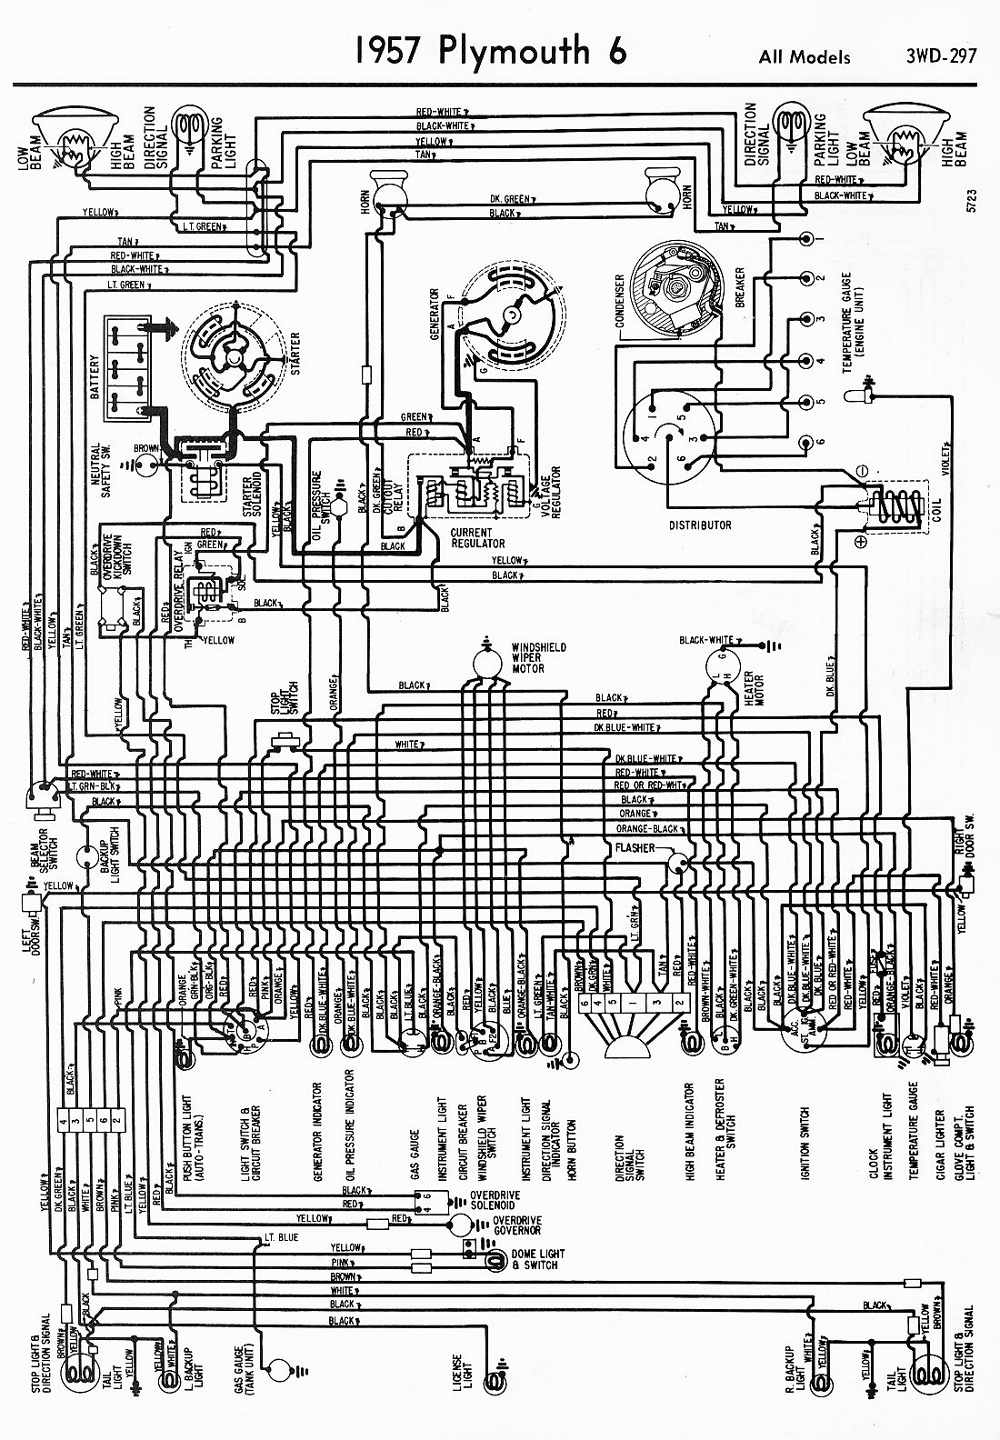 Pleasant 55 Chevy Fuse Box Wiring Basic Electronics Wiring Diagram Wiring Cloud Nuvitbieswglorg